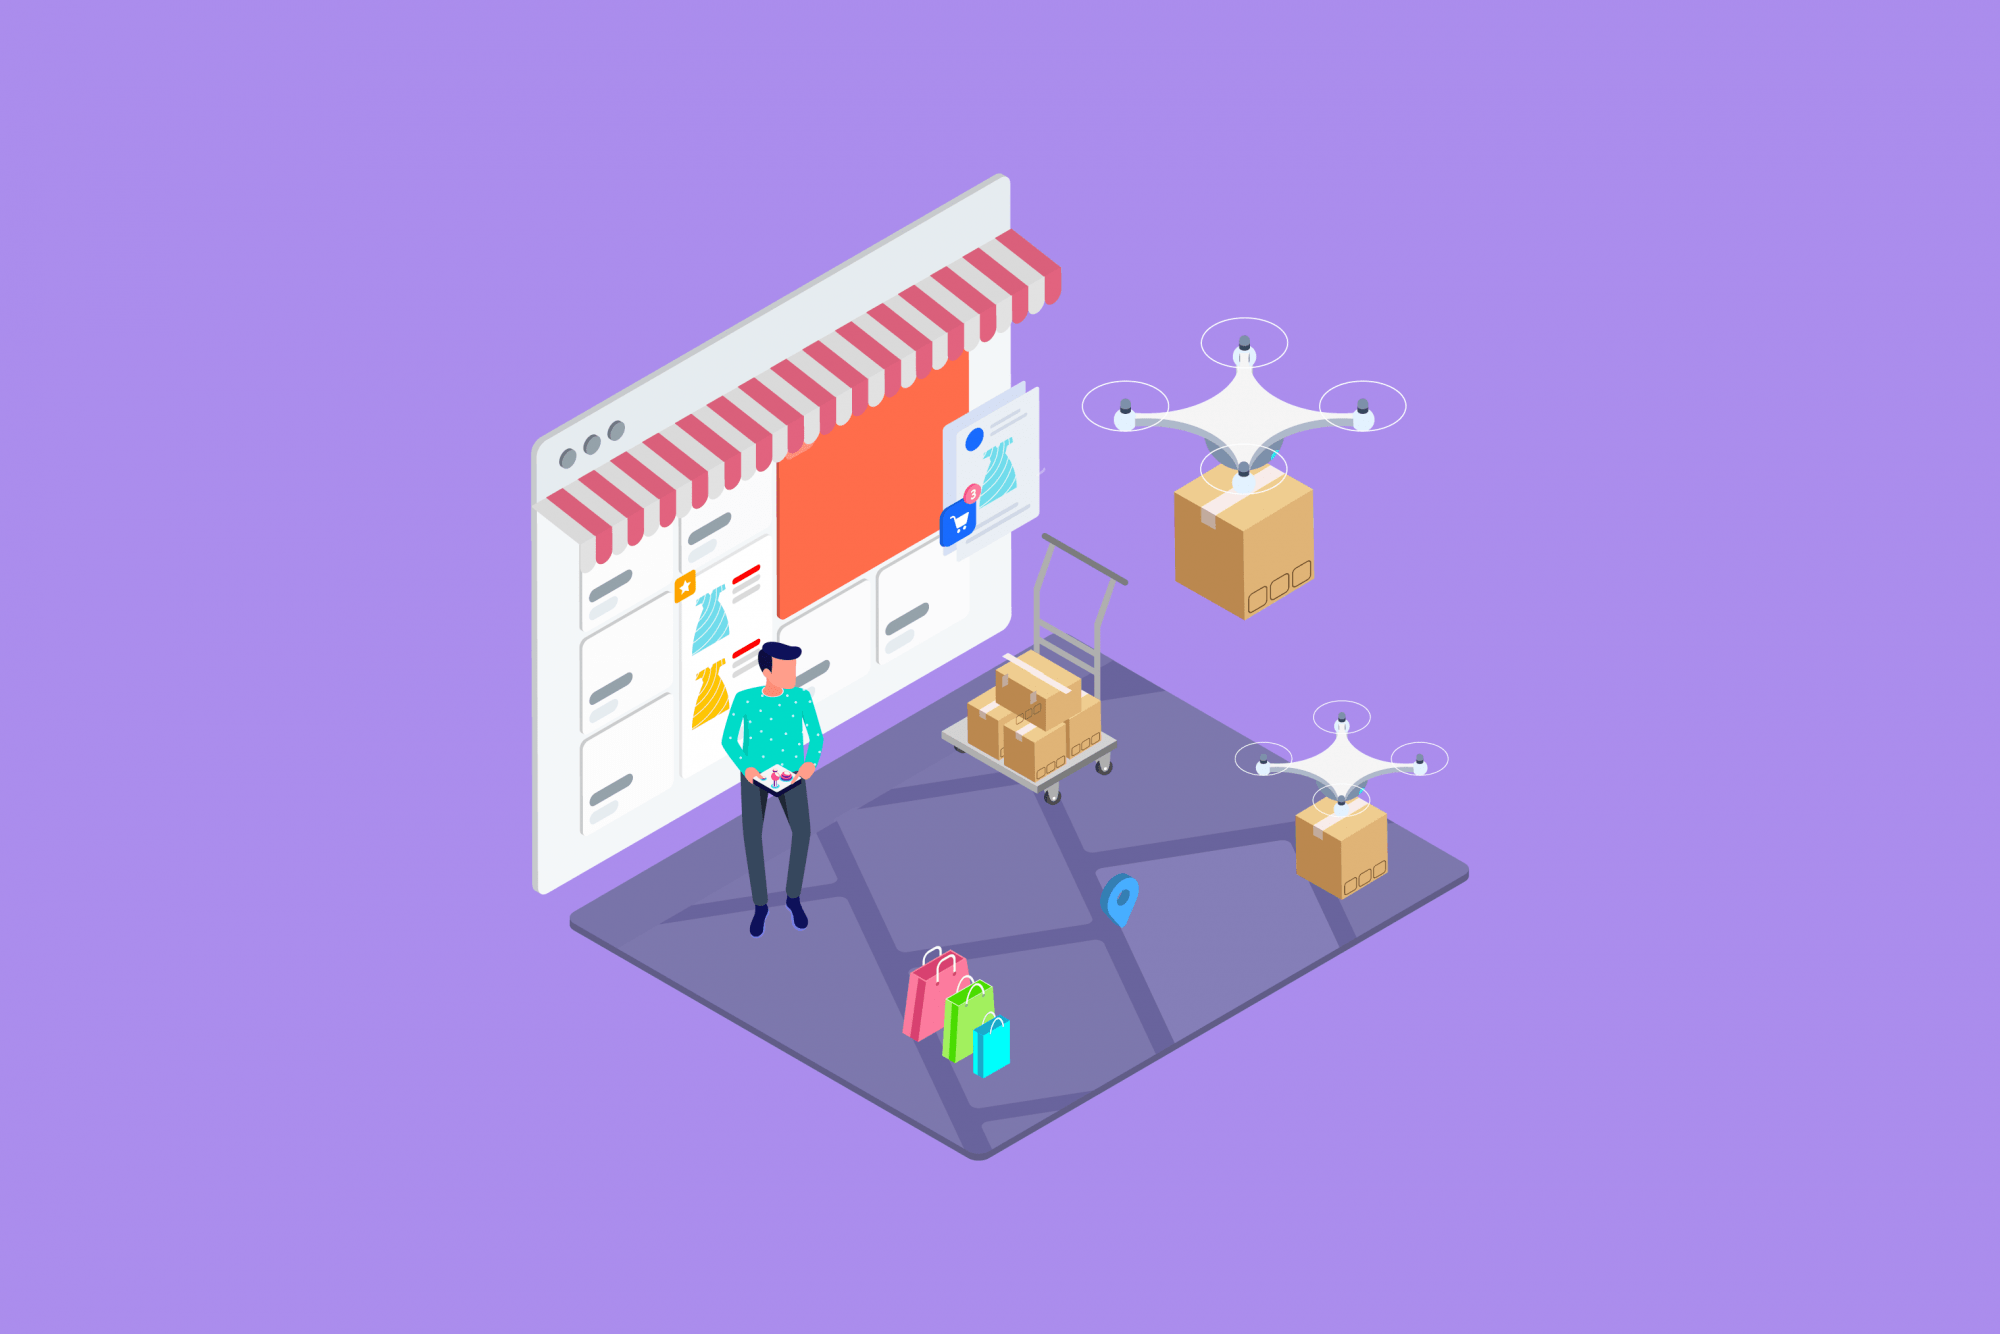 Drones-Delivery-Isometric-Illustration-T2.png